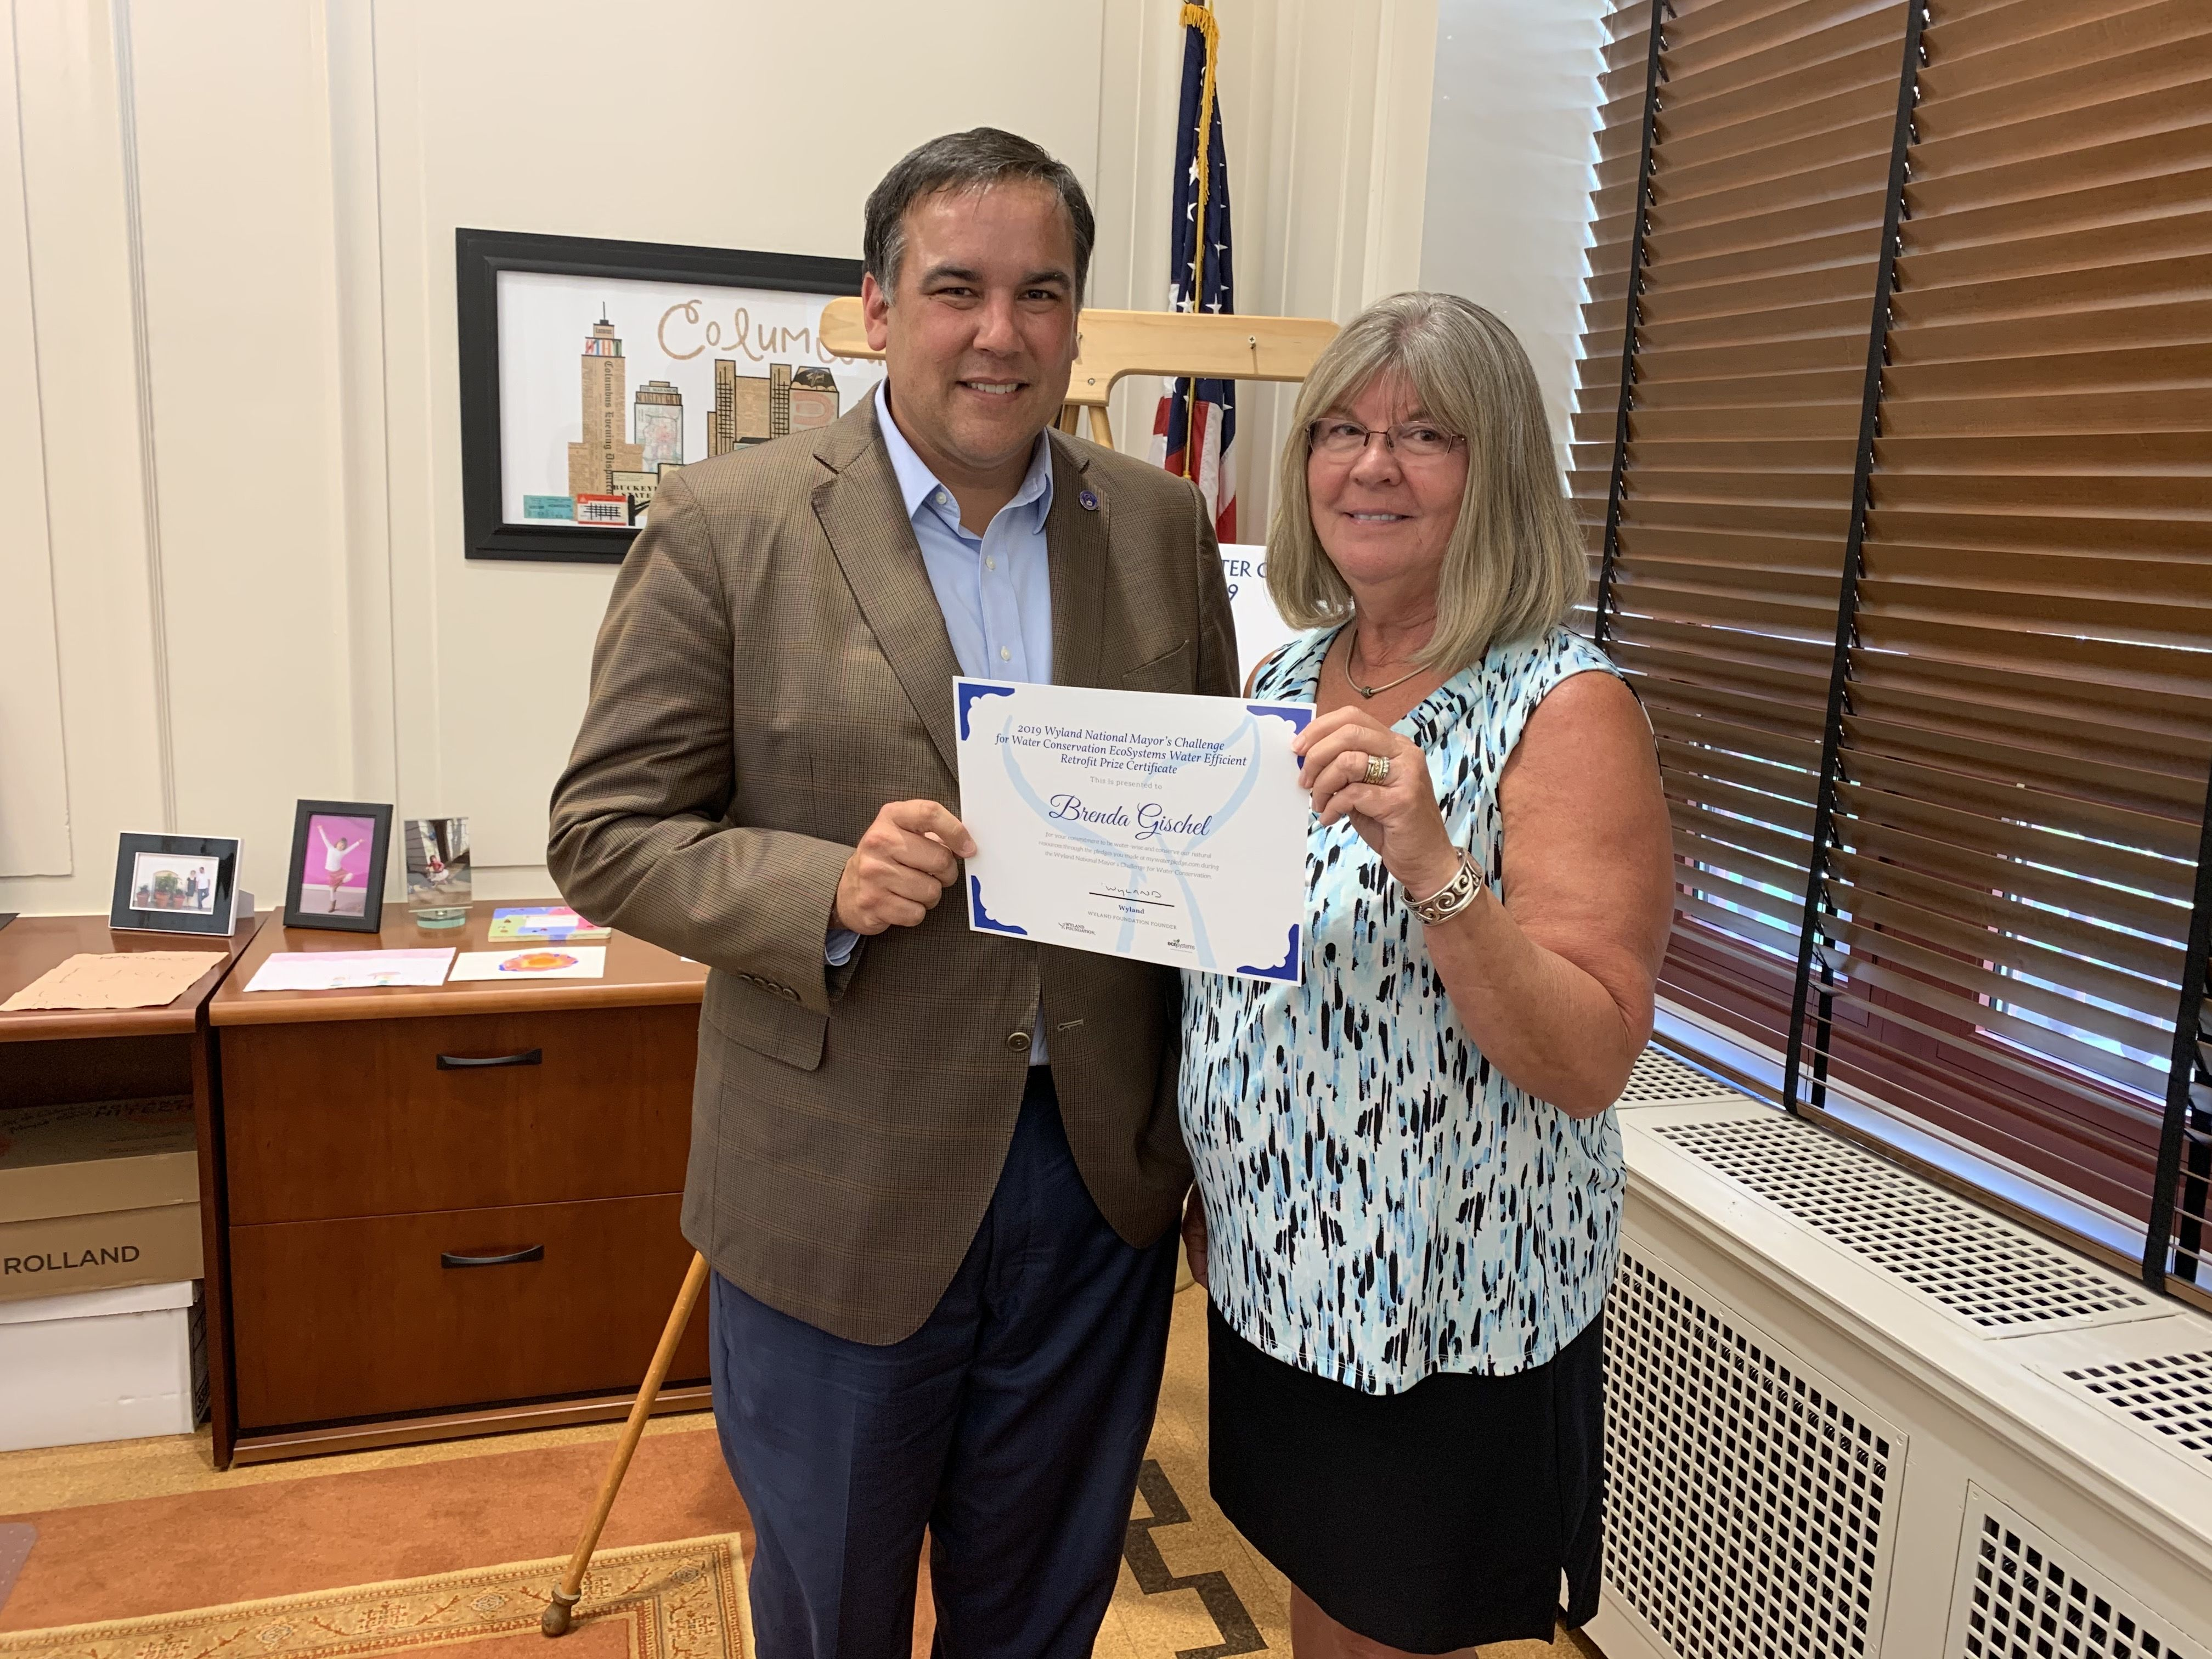 Ecosystems salutes winner of Wyland National Mayor's challenge for water conservation with home water efficiency makeover